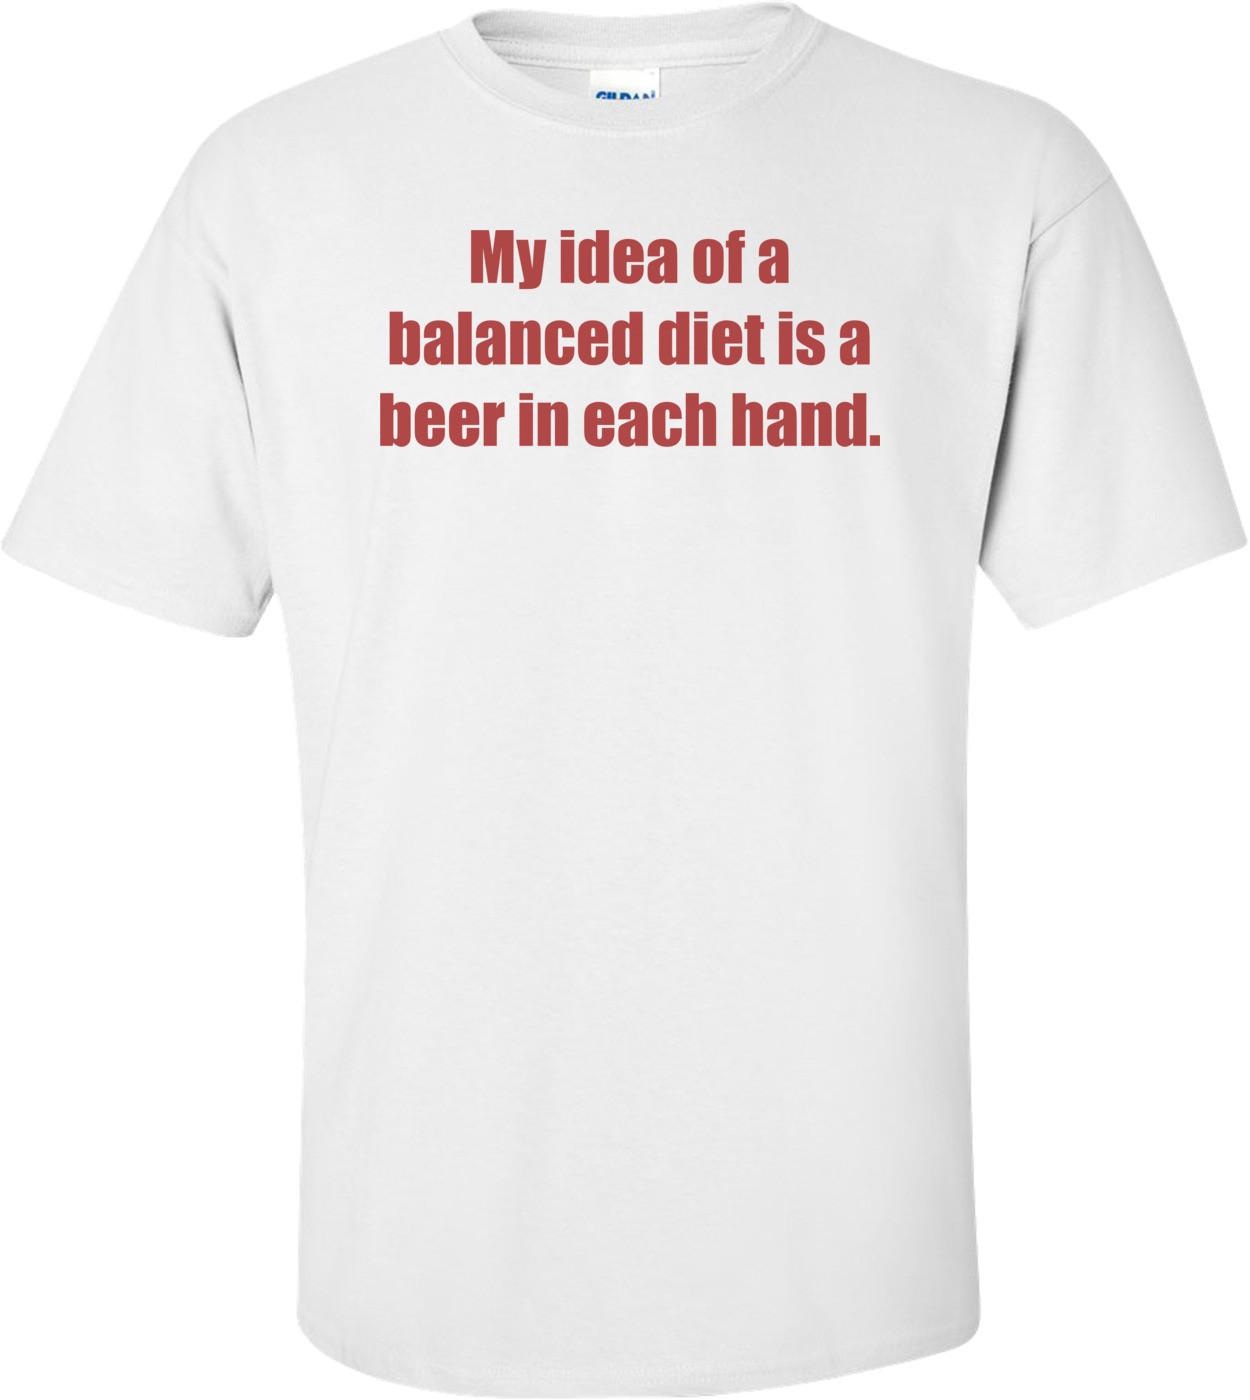 My idea of a balanced diet is a beer in each hand. Shirt